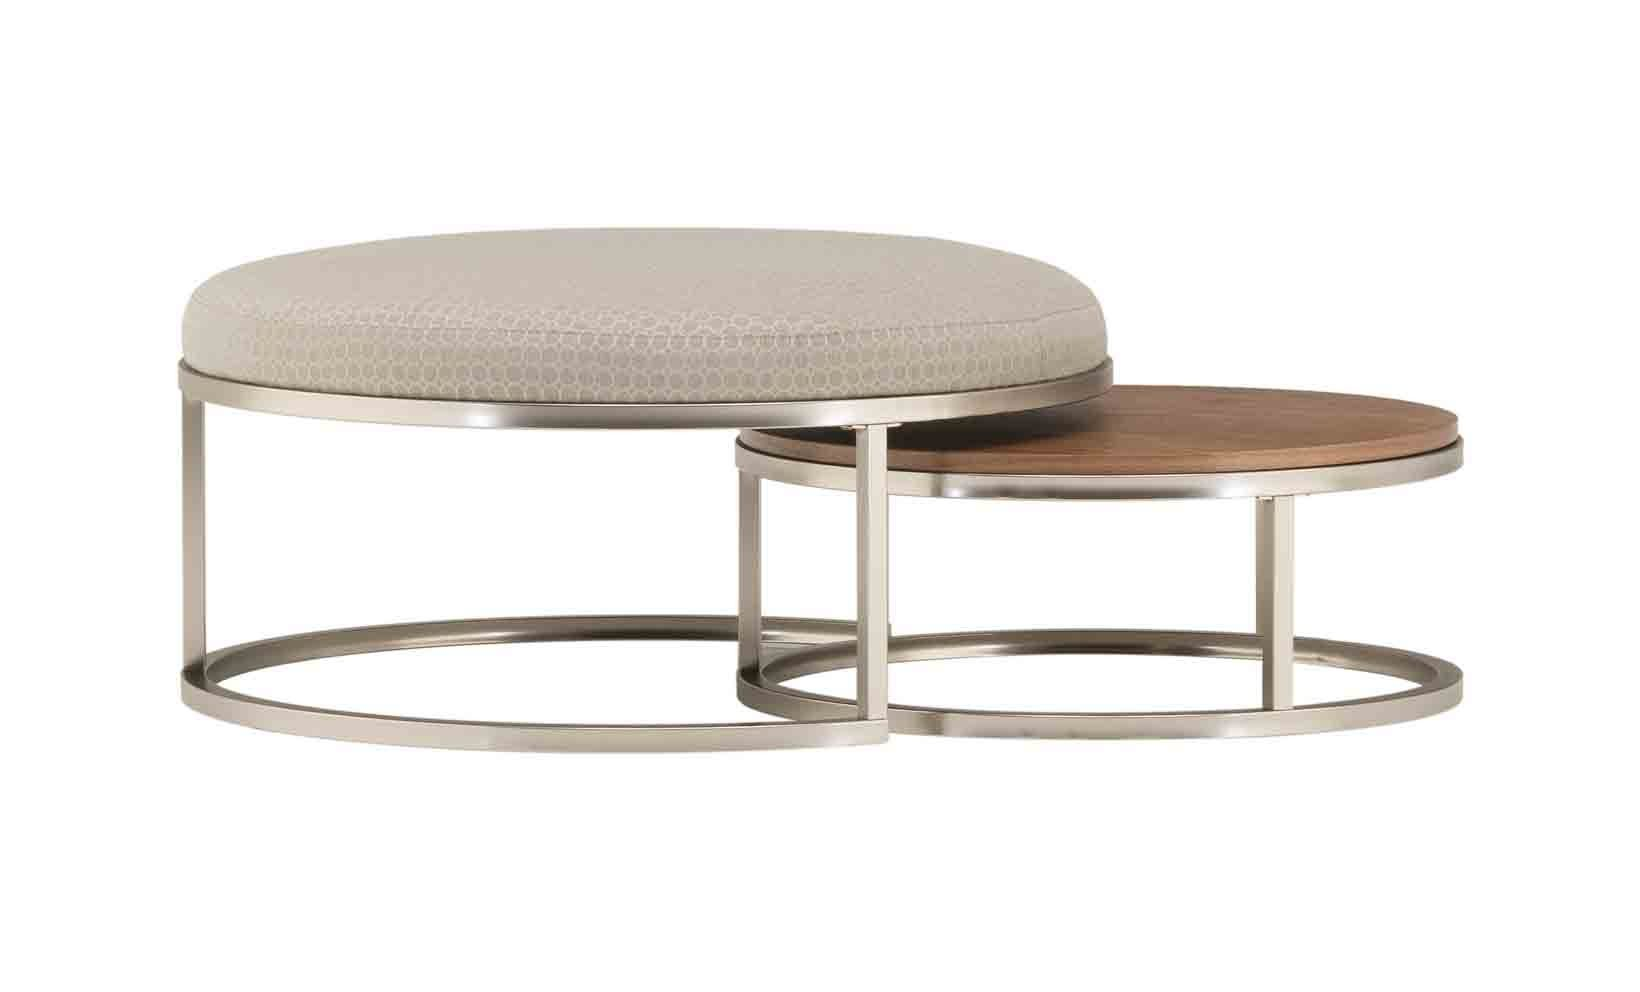 Diminuendo Nesting Cocktail Table Nesting Cocktail Table Nesting Coffee Tables Cocktail Tables [ 992 x 1640 Pixel ]